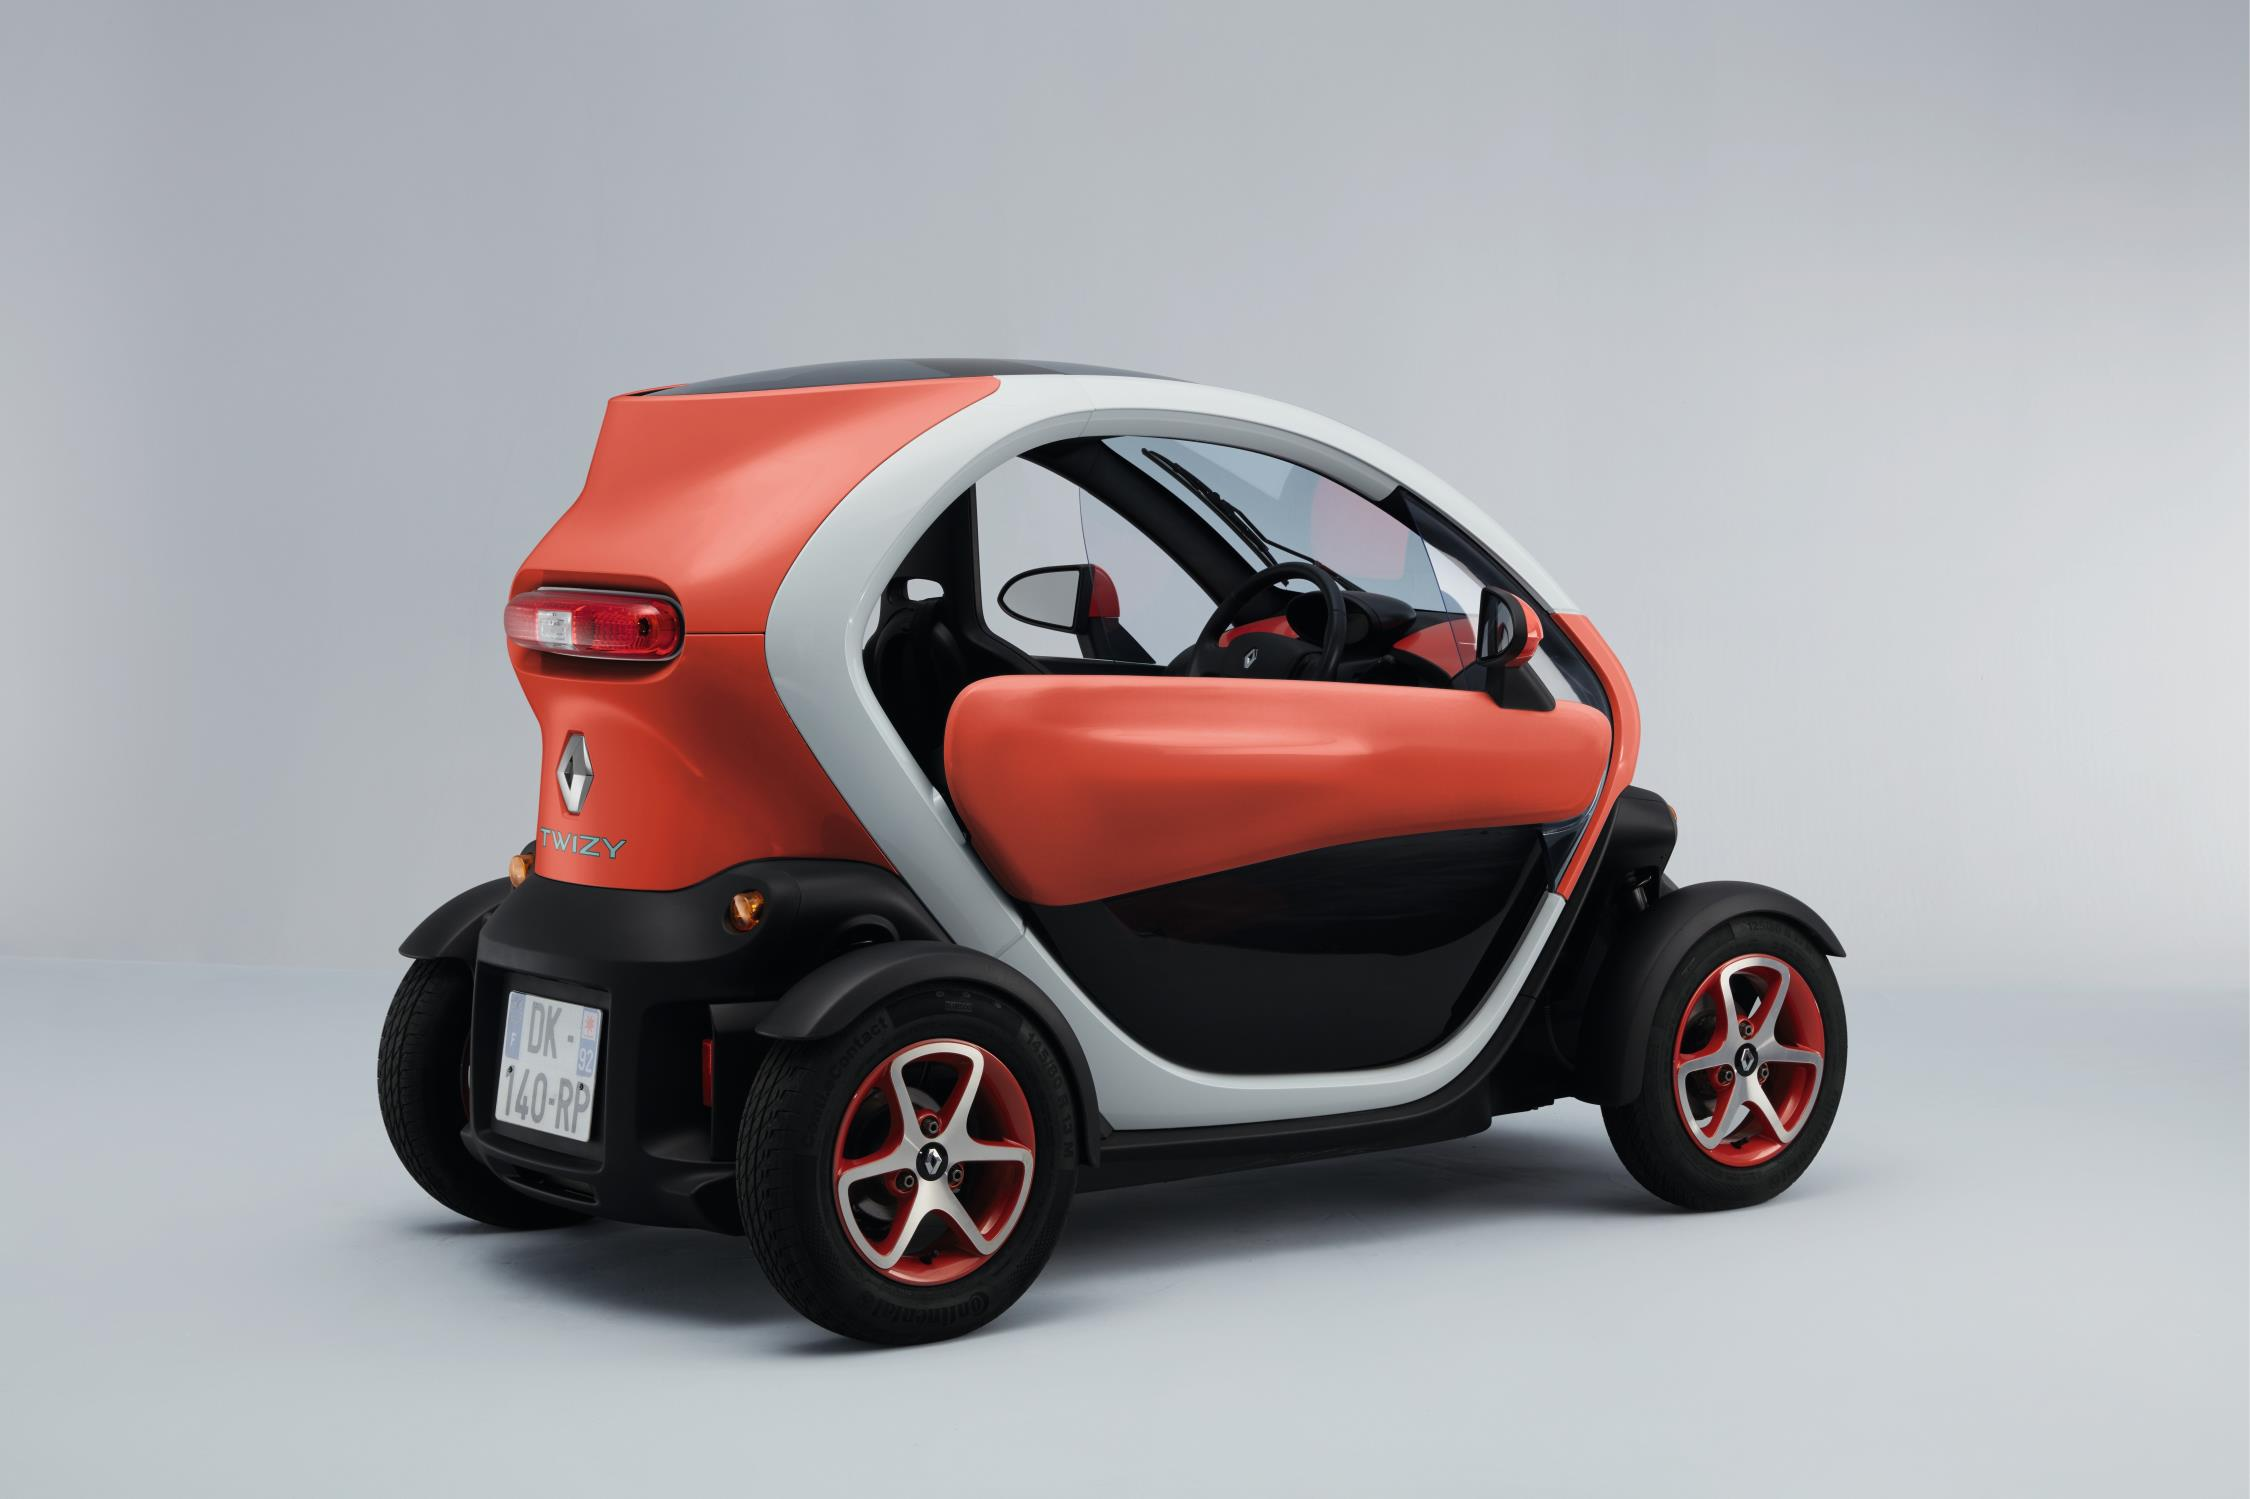 The Twizy is a car designed for urban environments